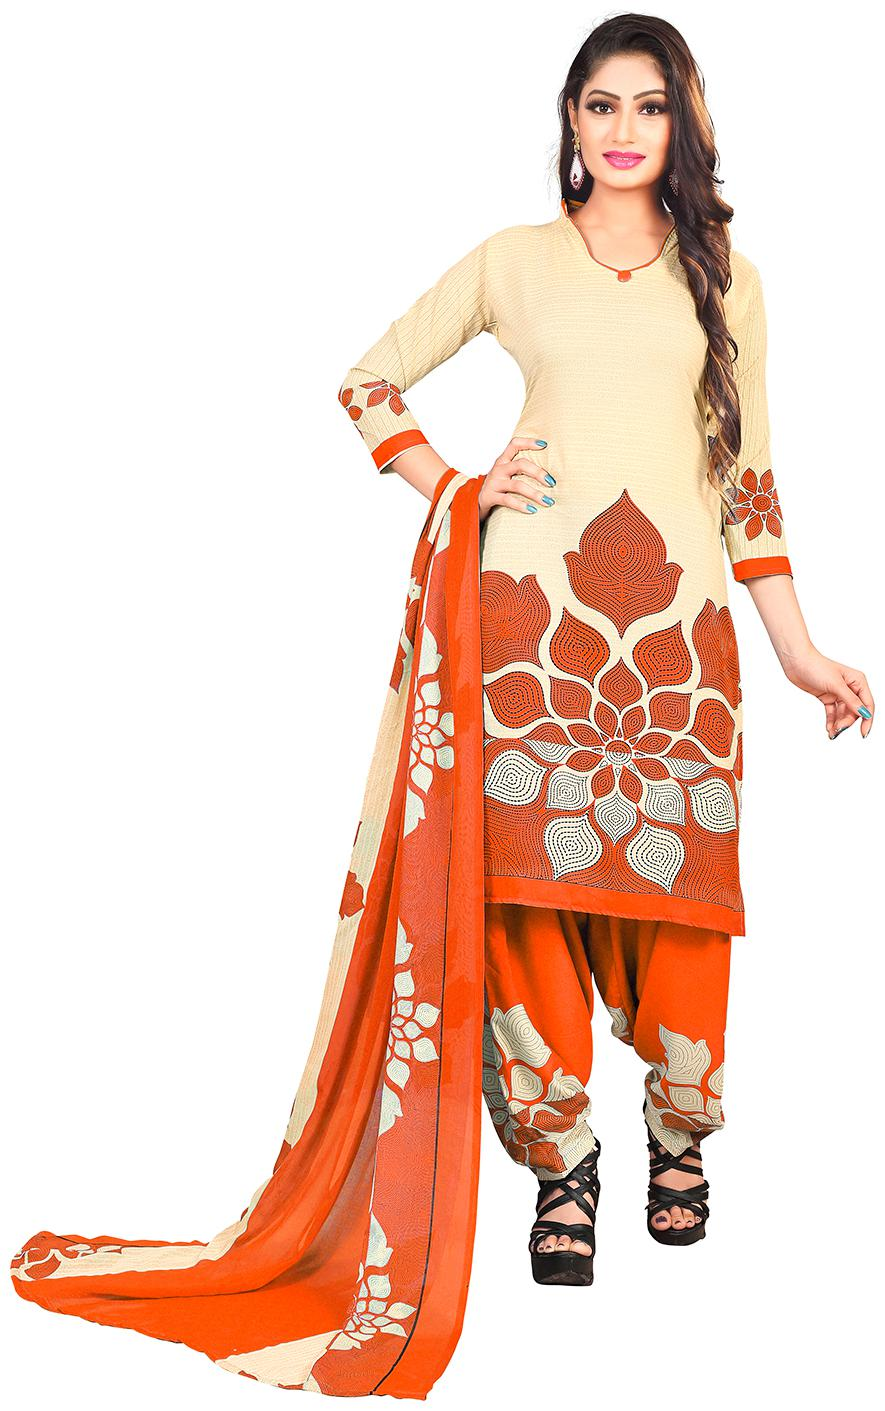 Jevi Prints Women's Synthetic Crepe Beige   Orange Floral Printed Salwar Suit Dupatta Material by Jevi Prints